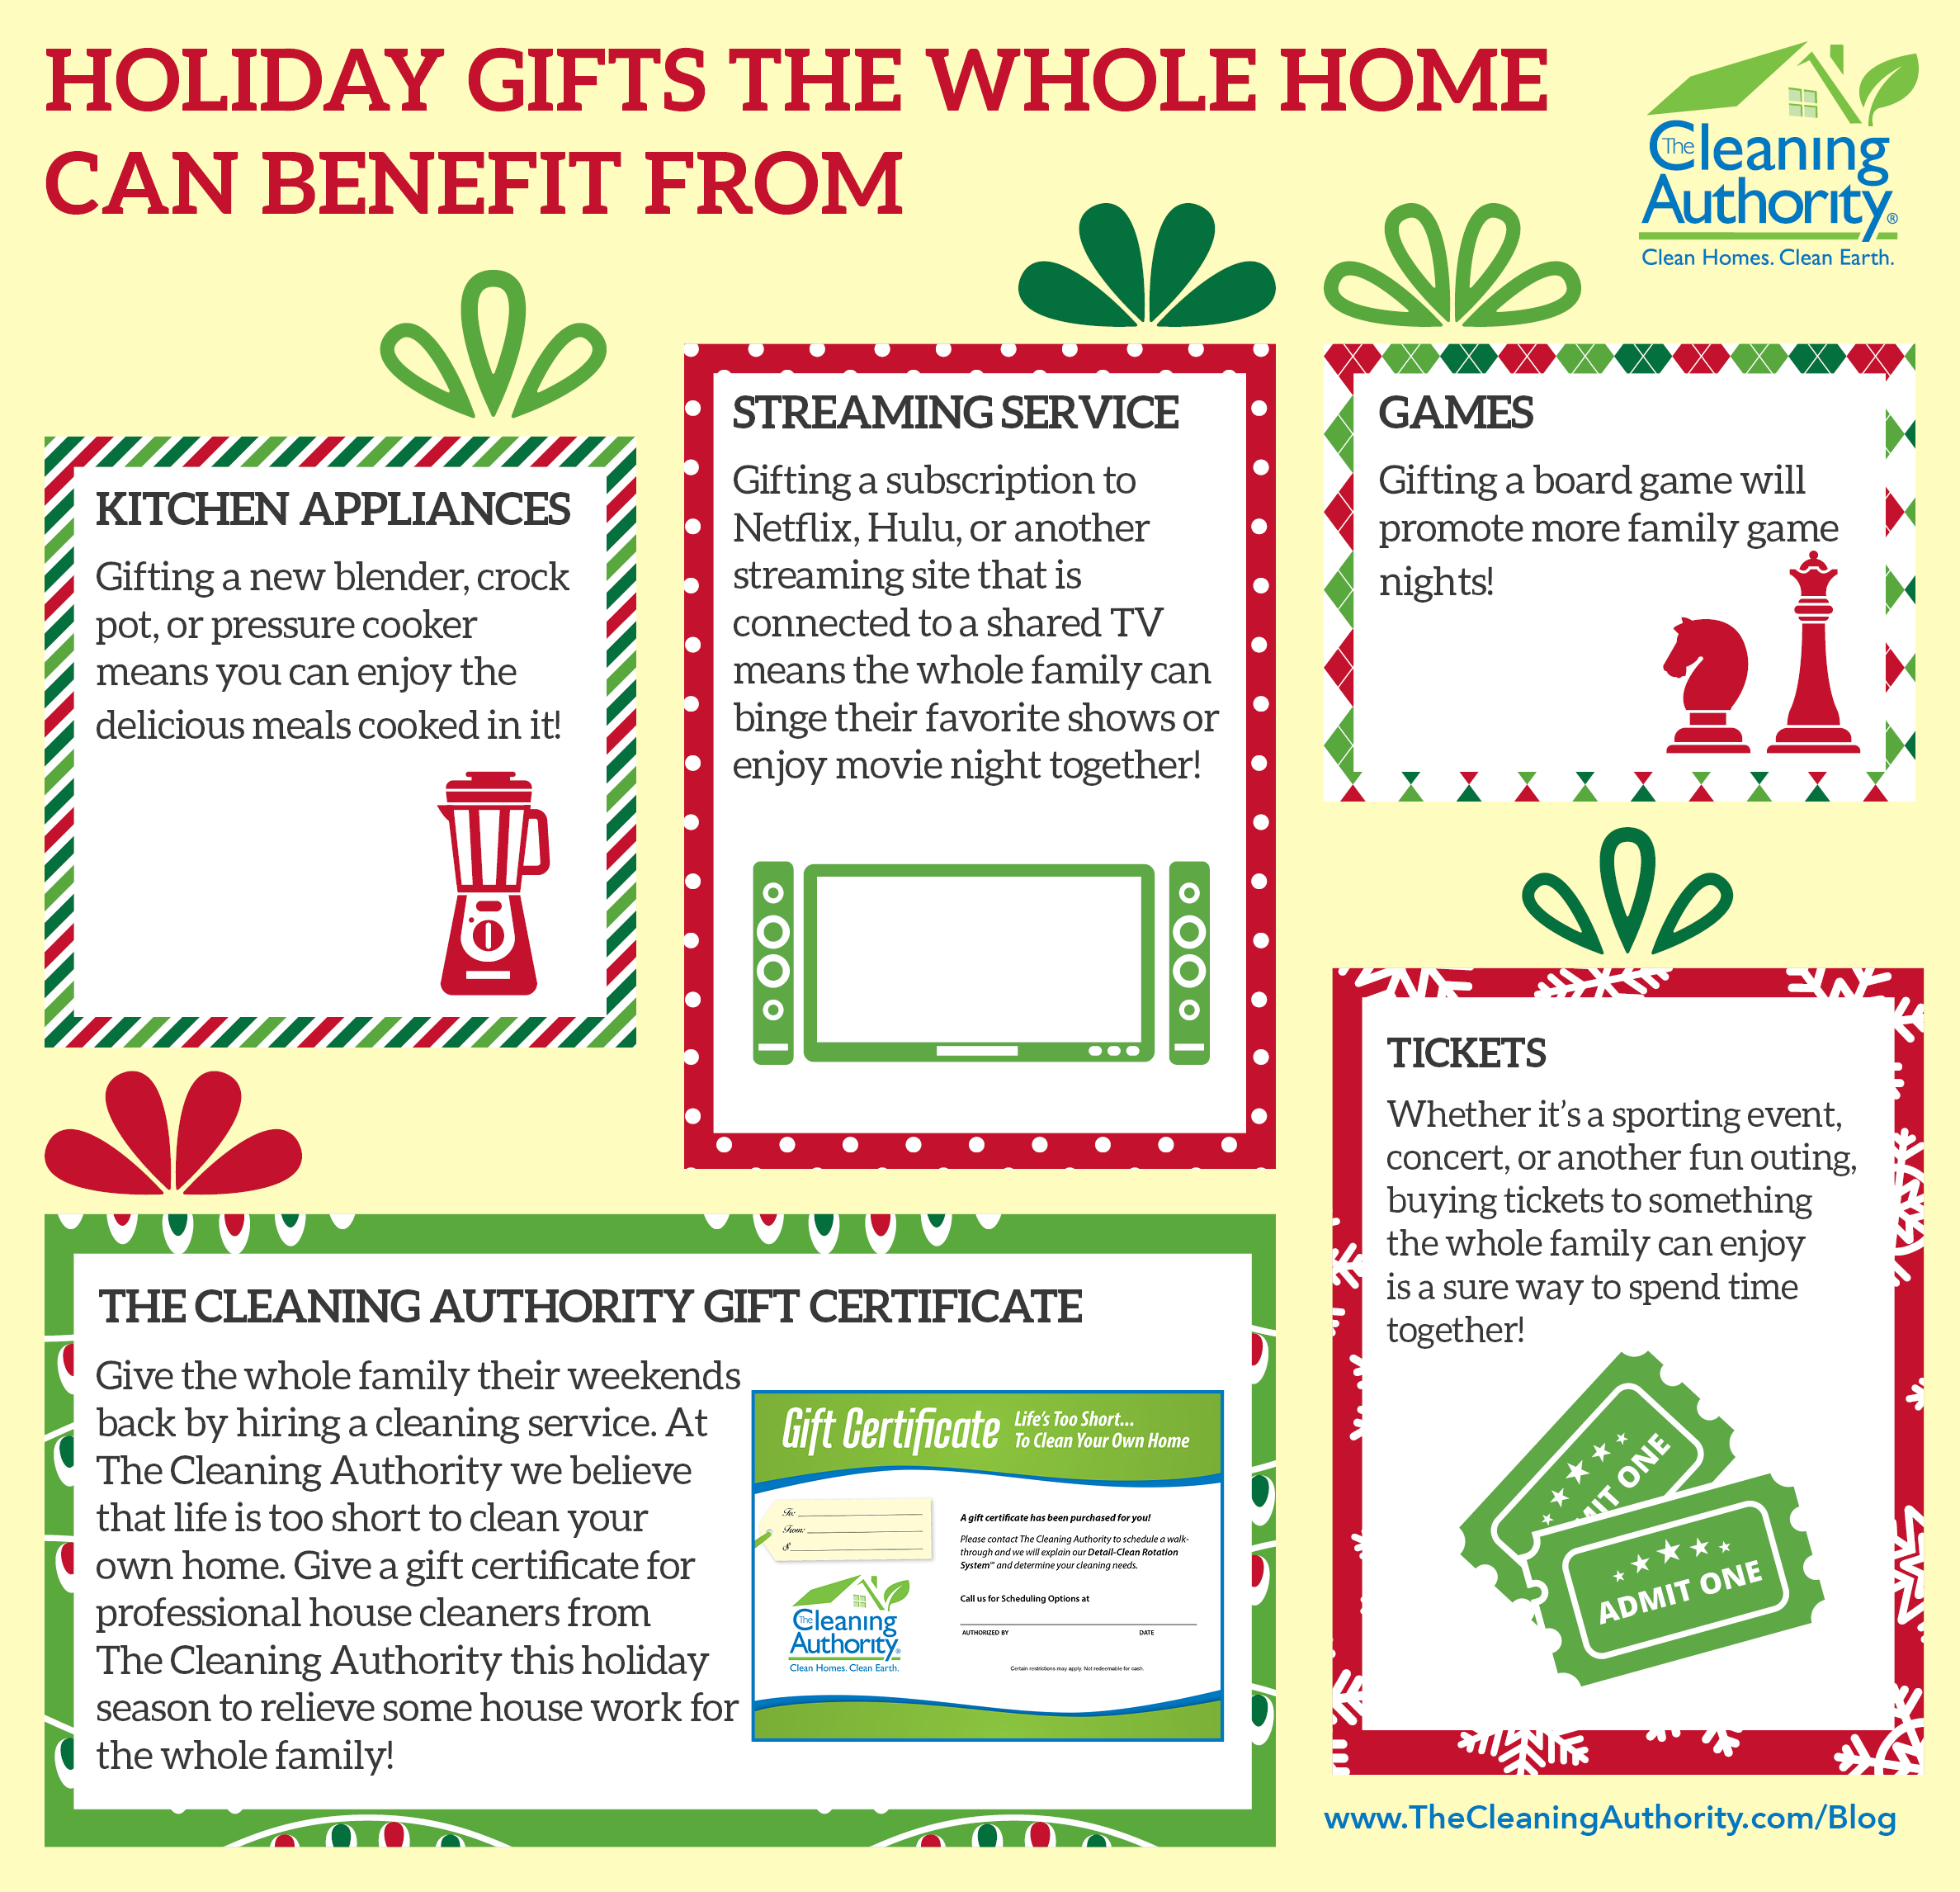 Holiday Gifts the Whole Home Can Benefit From infographic